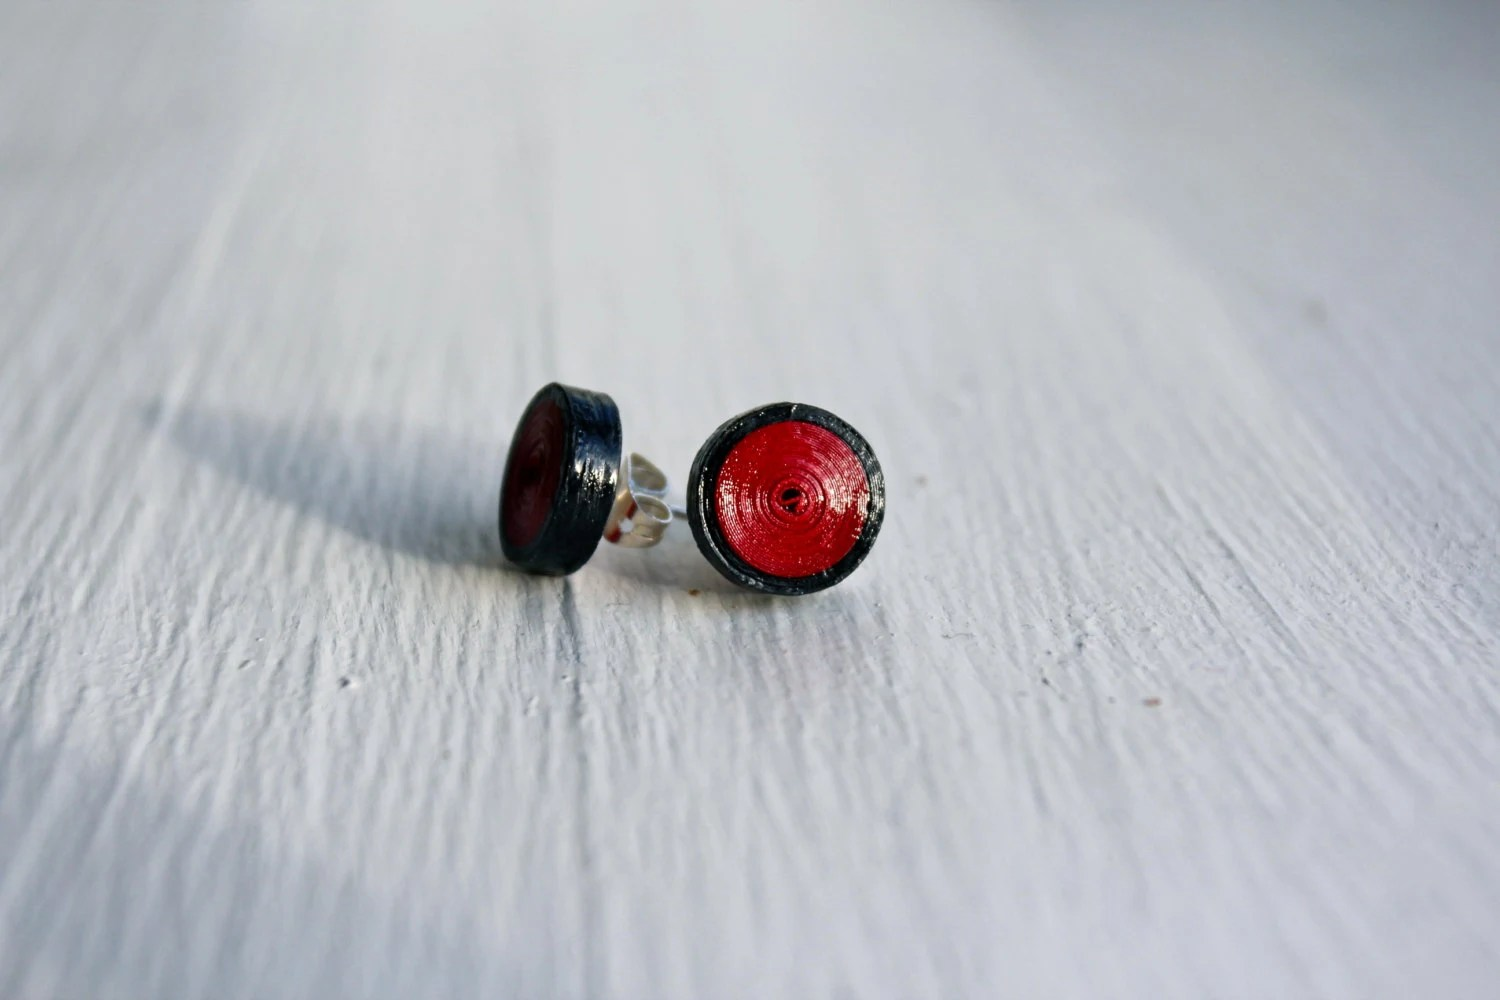 Handmade Black And Red Gauge Styled Paper Quilled Earrings - TheDesktopJunkie